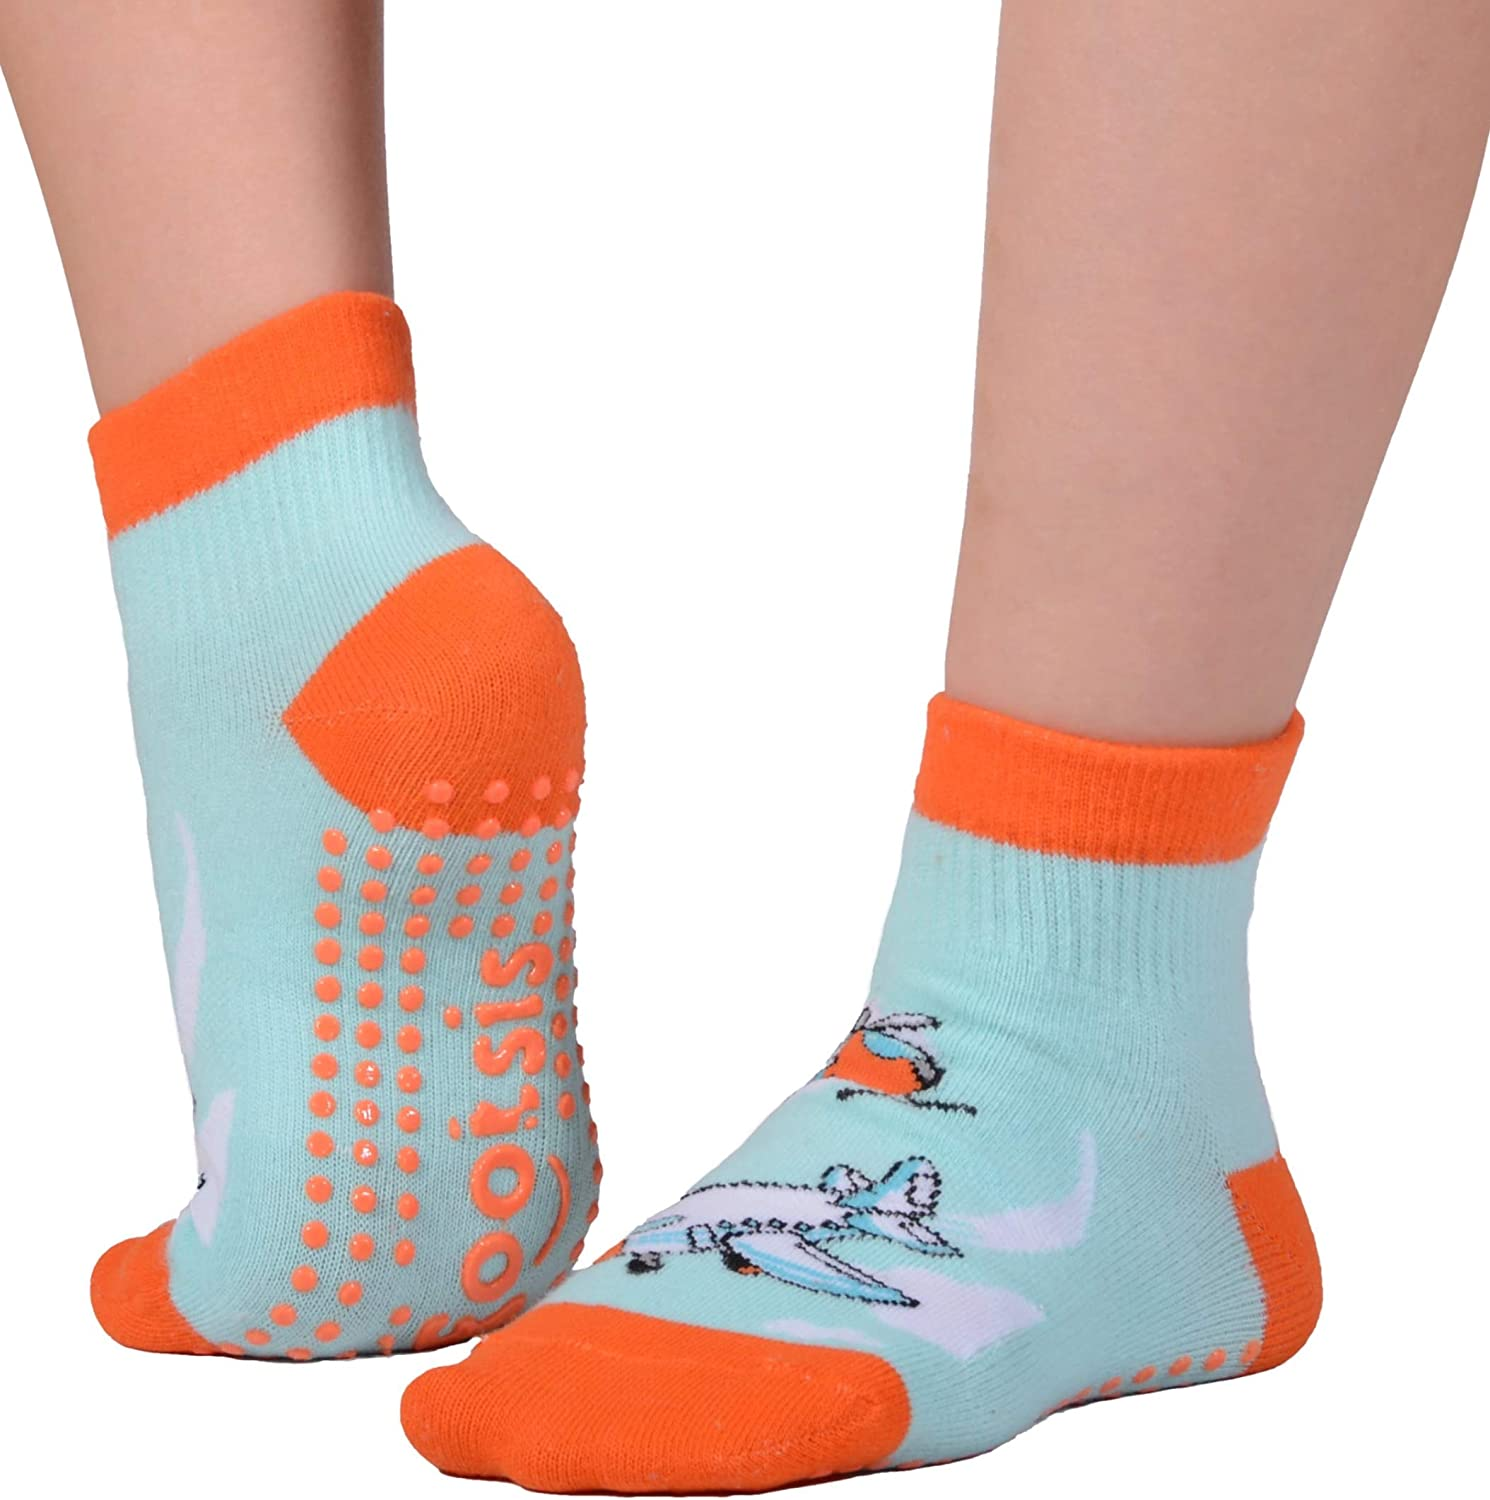 FOOTSIS Non Slip Grip Socks for Yoga, Pilates, Barre, Home, Hospital ,Mommy and Me classes